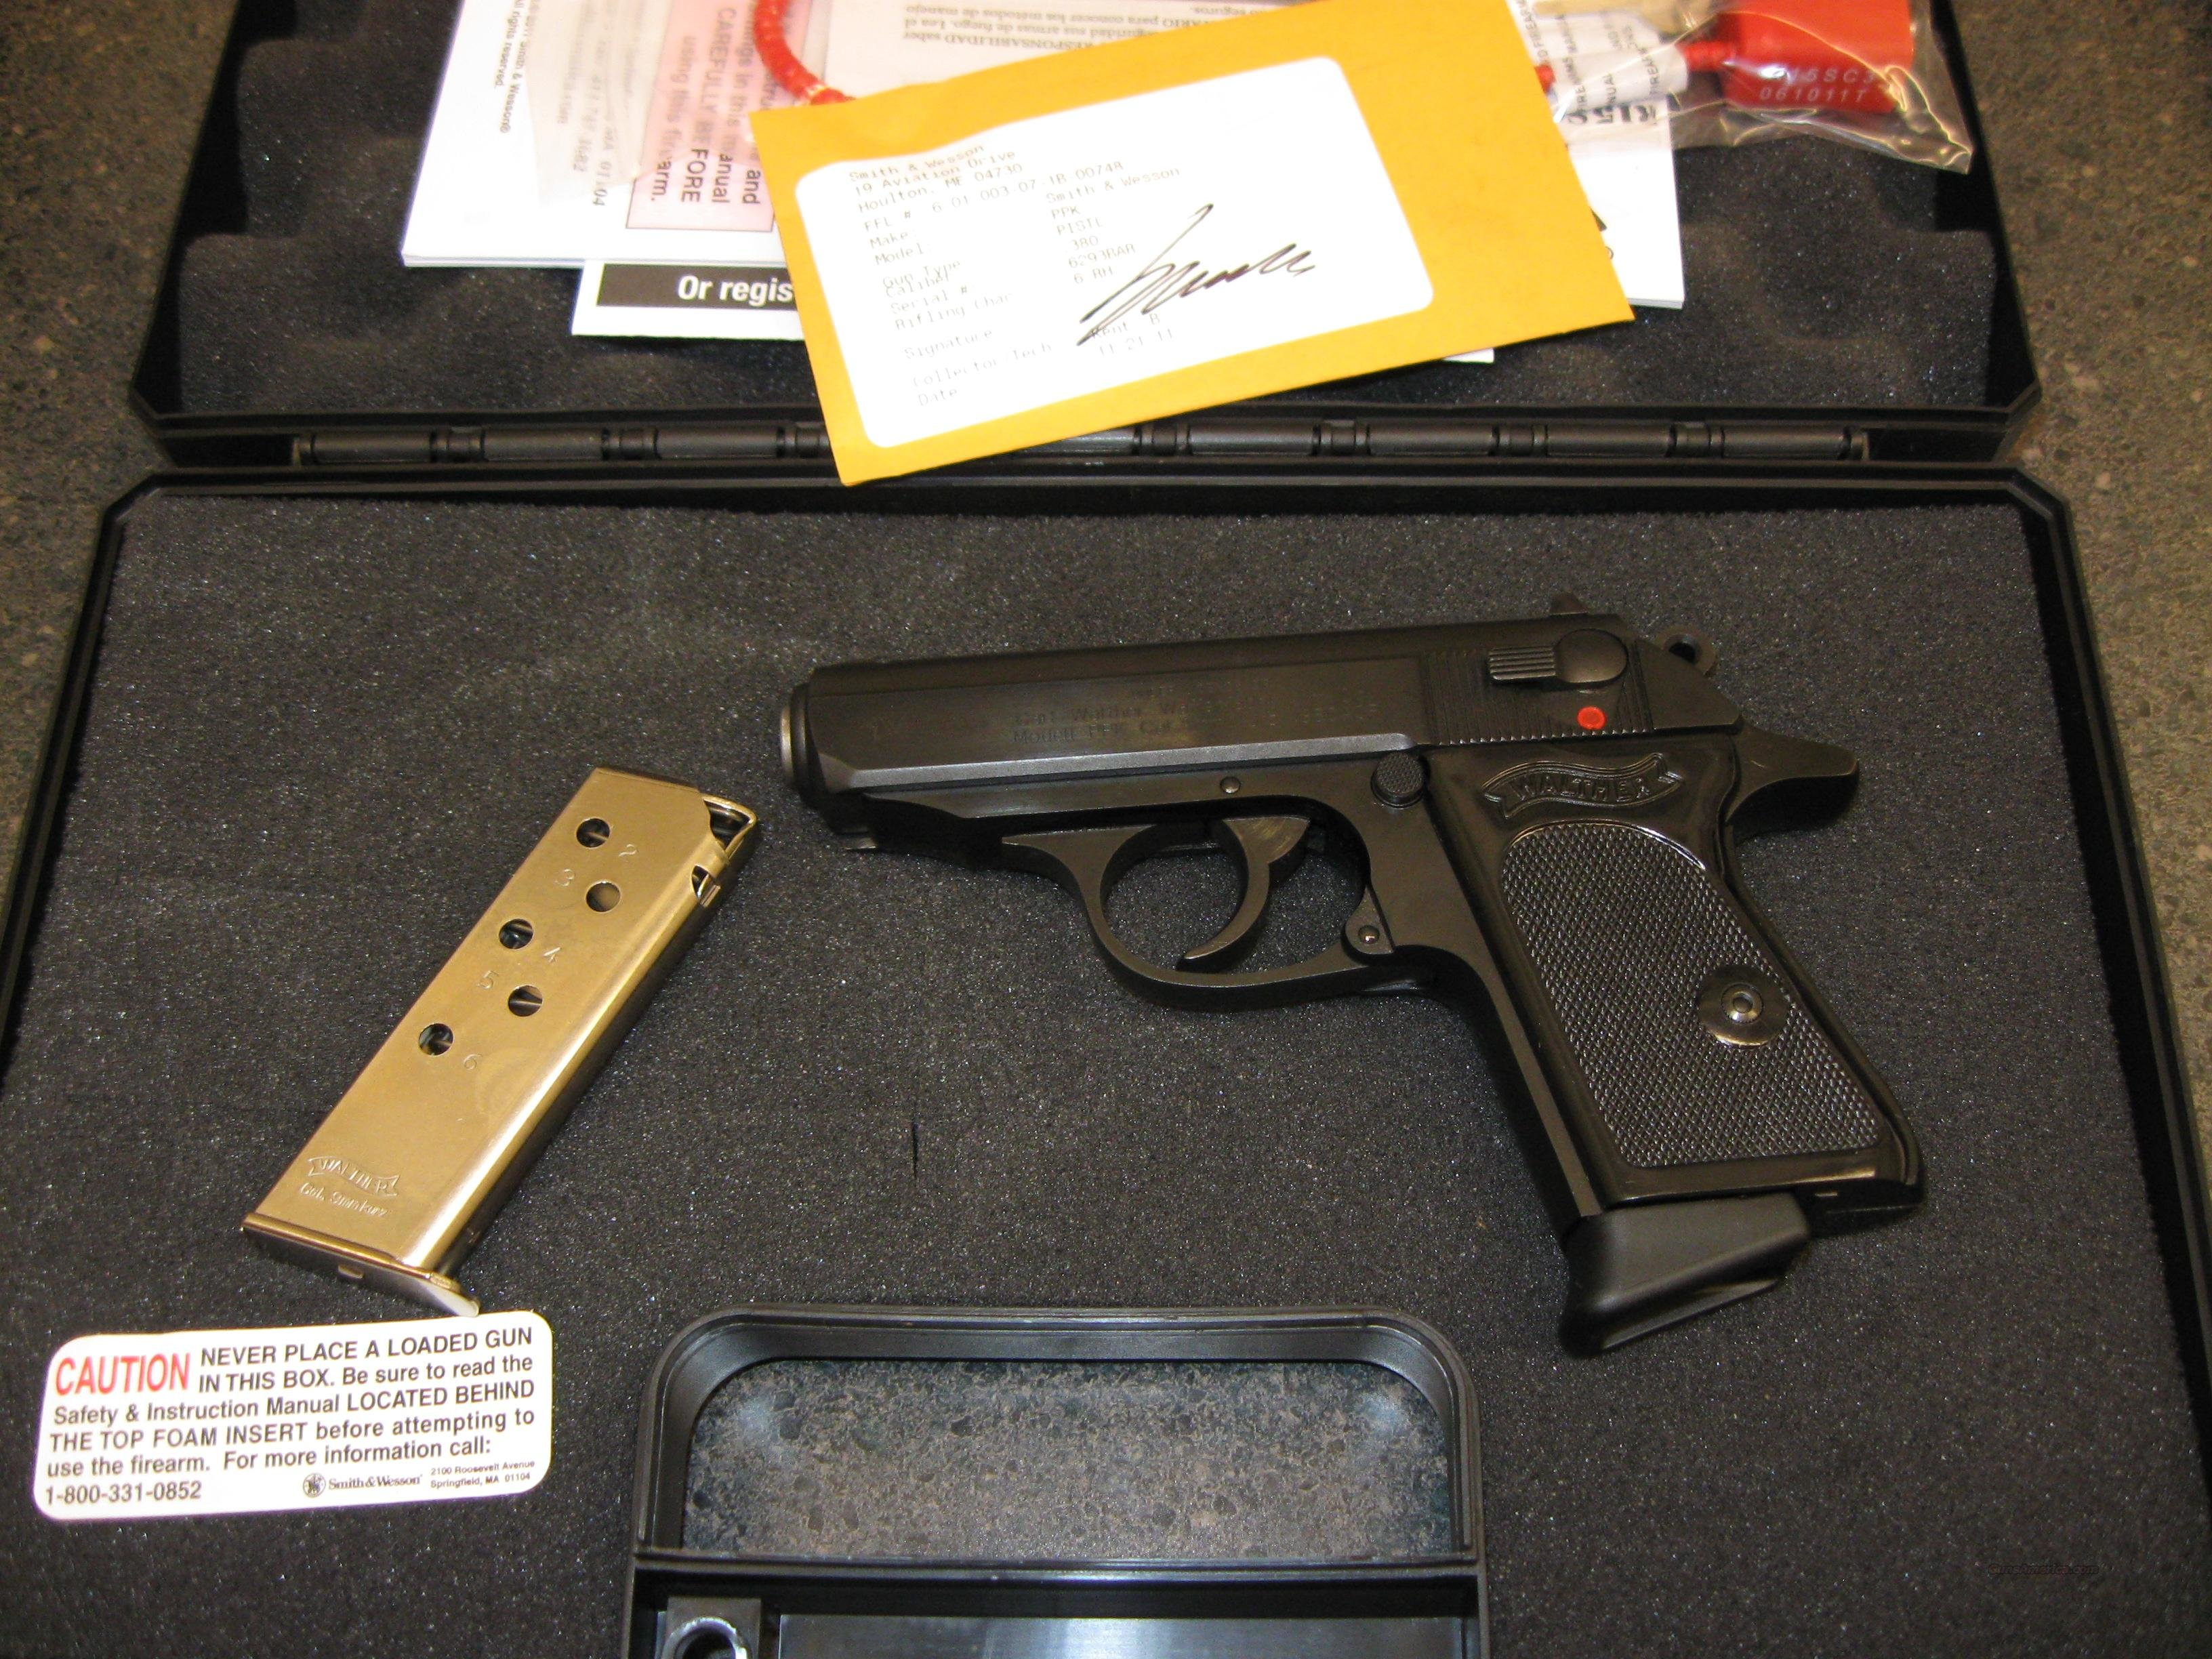 walther model ppk semi auto pistol vah38006 38 for sale rh gunsamerica com German Walther PPK 380 James Bond with Walther PPK S